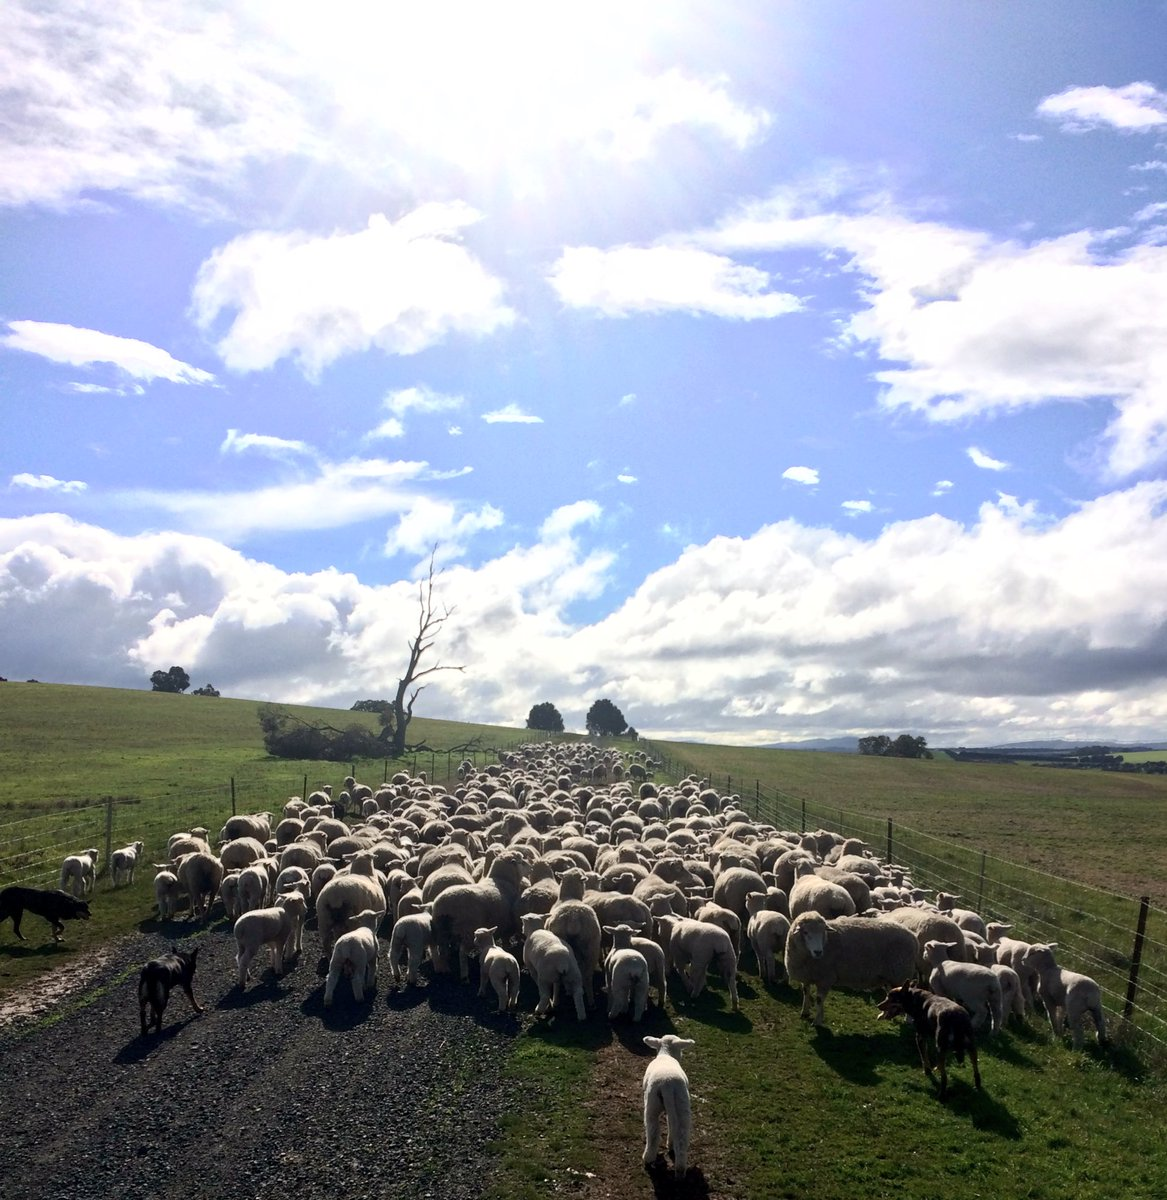 Shifting ewes &amp; lambs again - chasing grass over the winter feed gap. #lambing17 <br>http://pic.twitter.com/nHBNYeKNH7